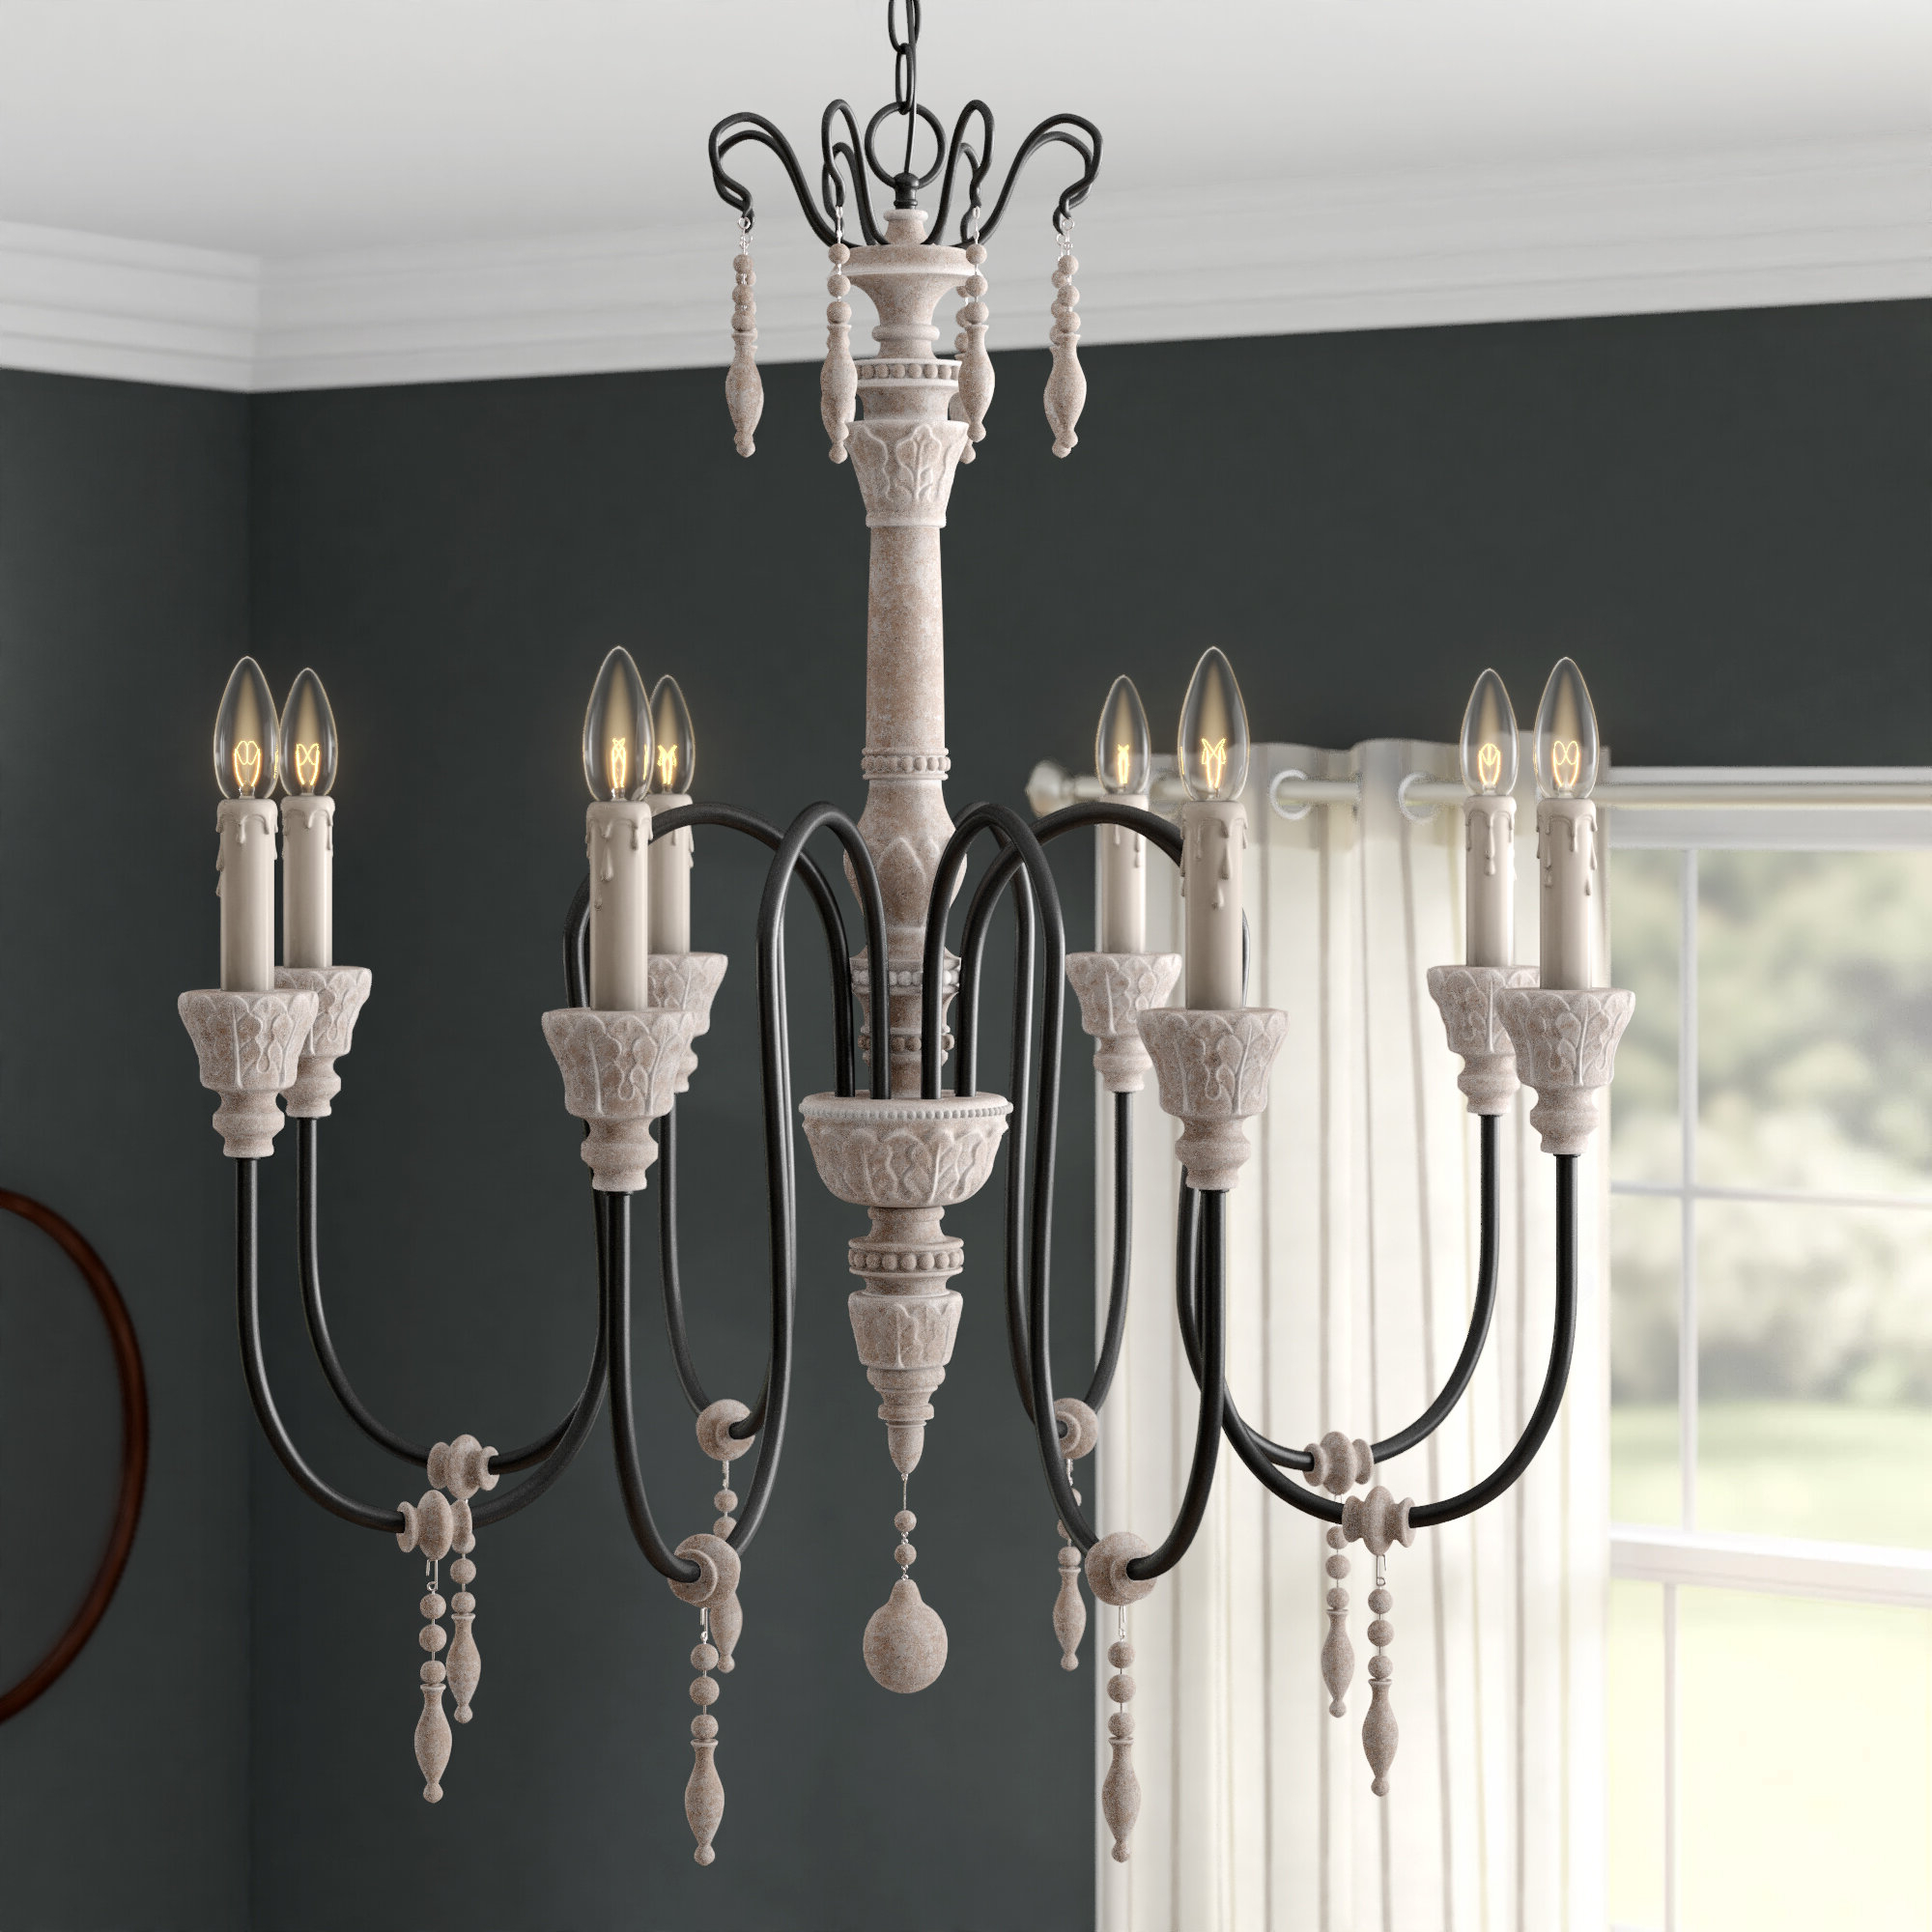 Popular Ailsa 8 Light Candle Style Chandelier In Bouchette Traditional 6 Light Candle Style Chandeliers (View 15 of 20)